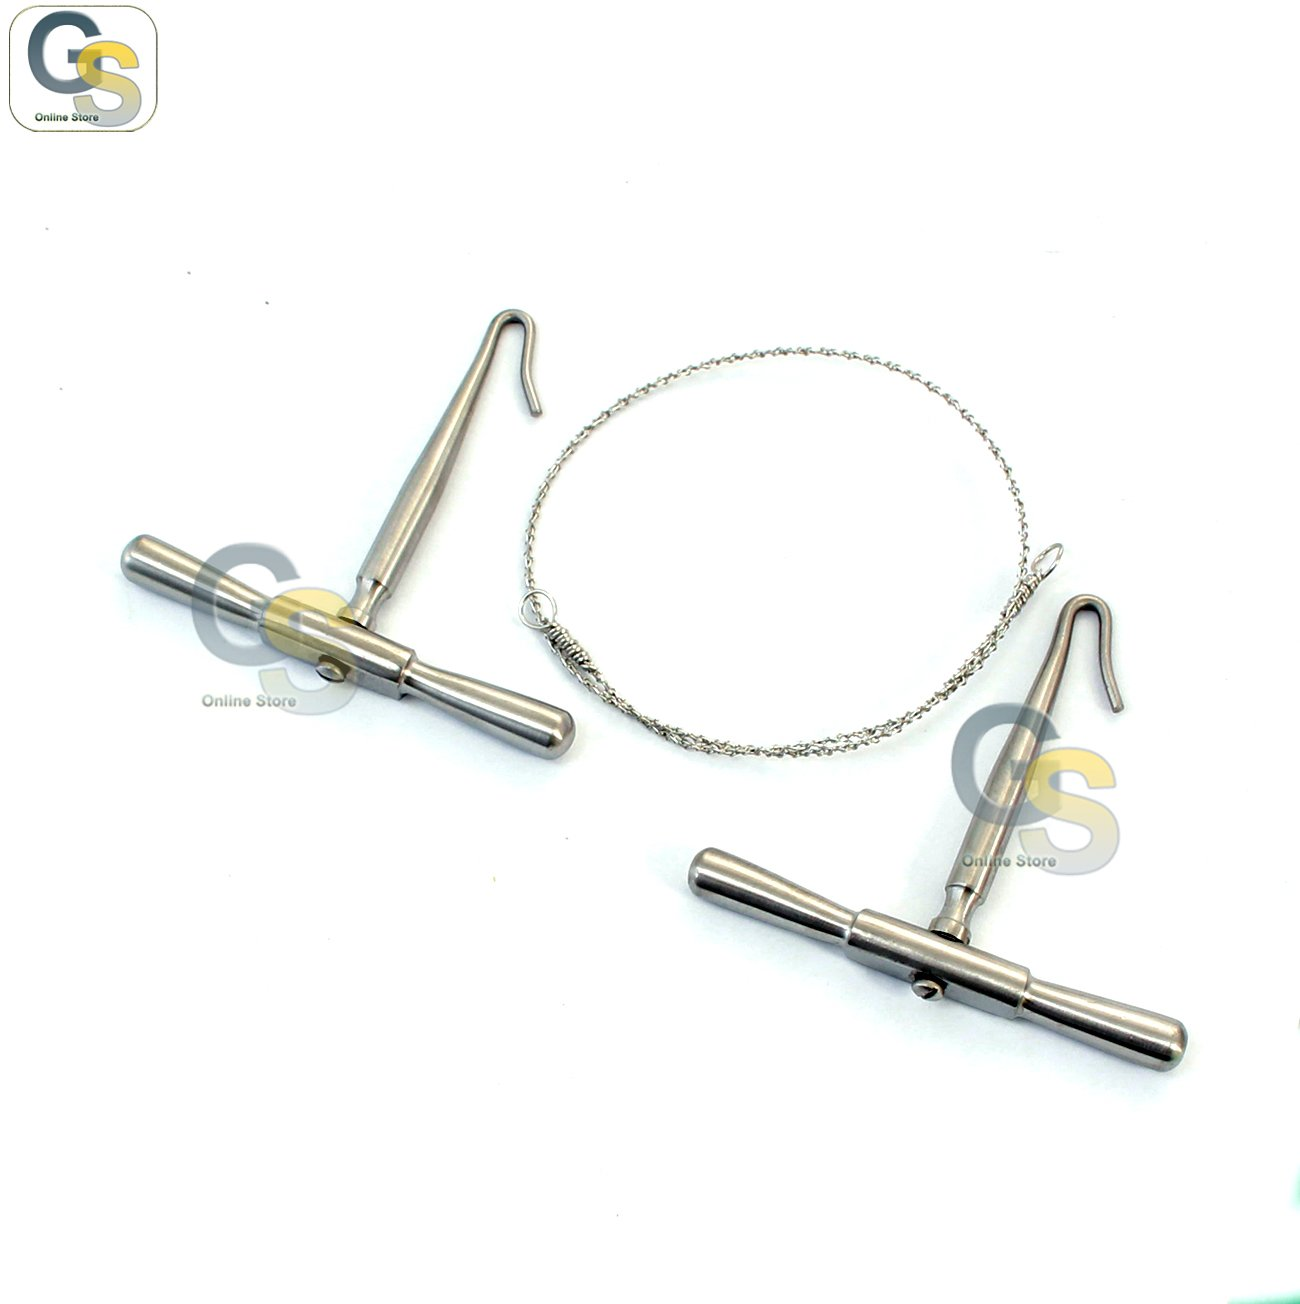 Amazon.com: G.S SET OF GIGLI SAW WIRE AND HANDLES: Health & Personal ...